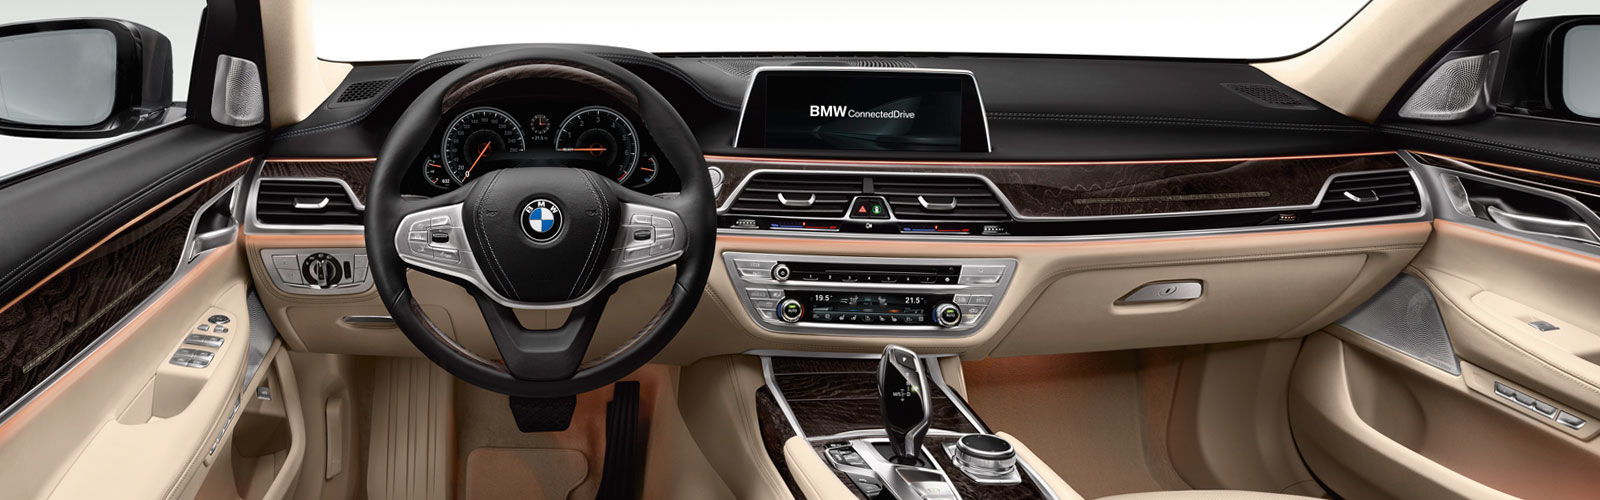 2017 Bmw Z4 Series Price >> New BMW X7 price, specs and release date | carwow